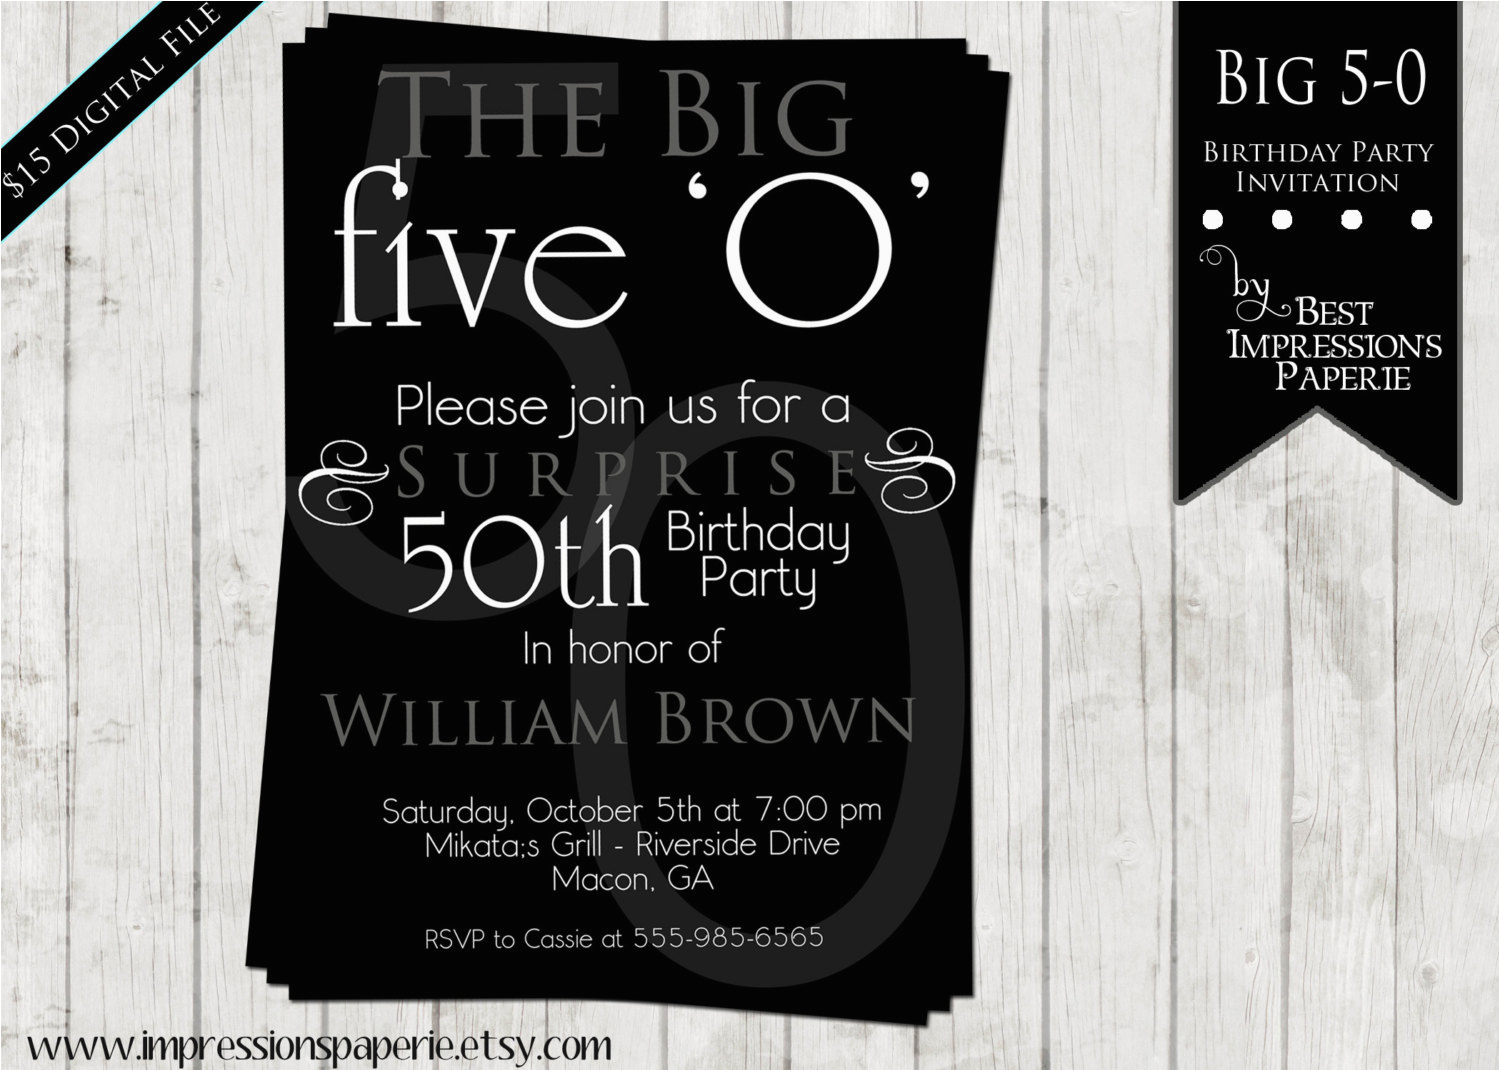 50th Birthday Party Invitation Wording Ideas Invitations For Men Dolanpedia